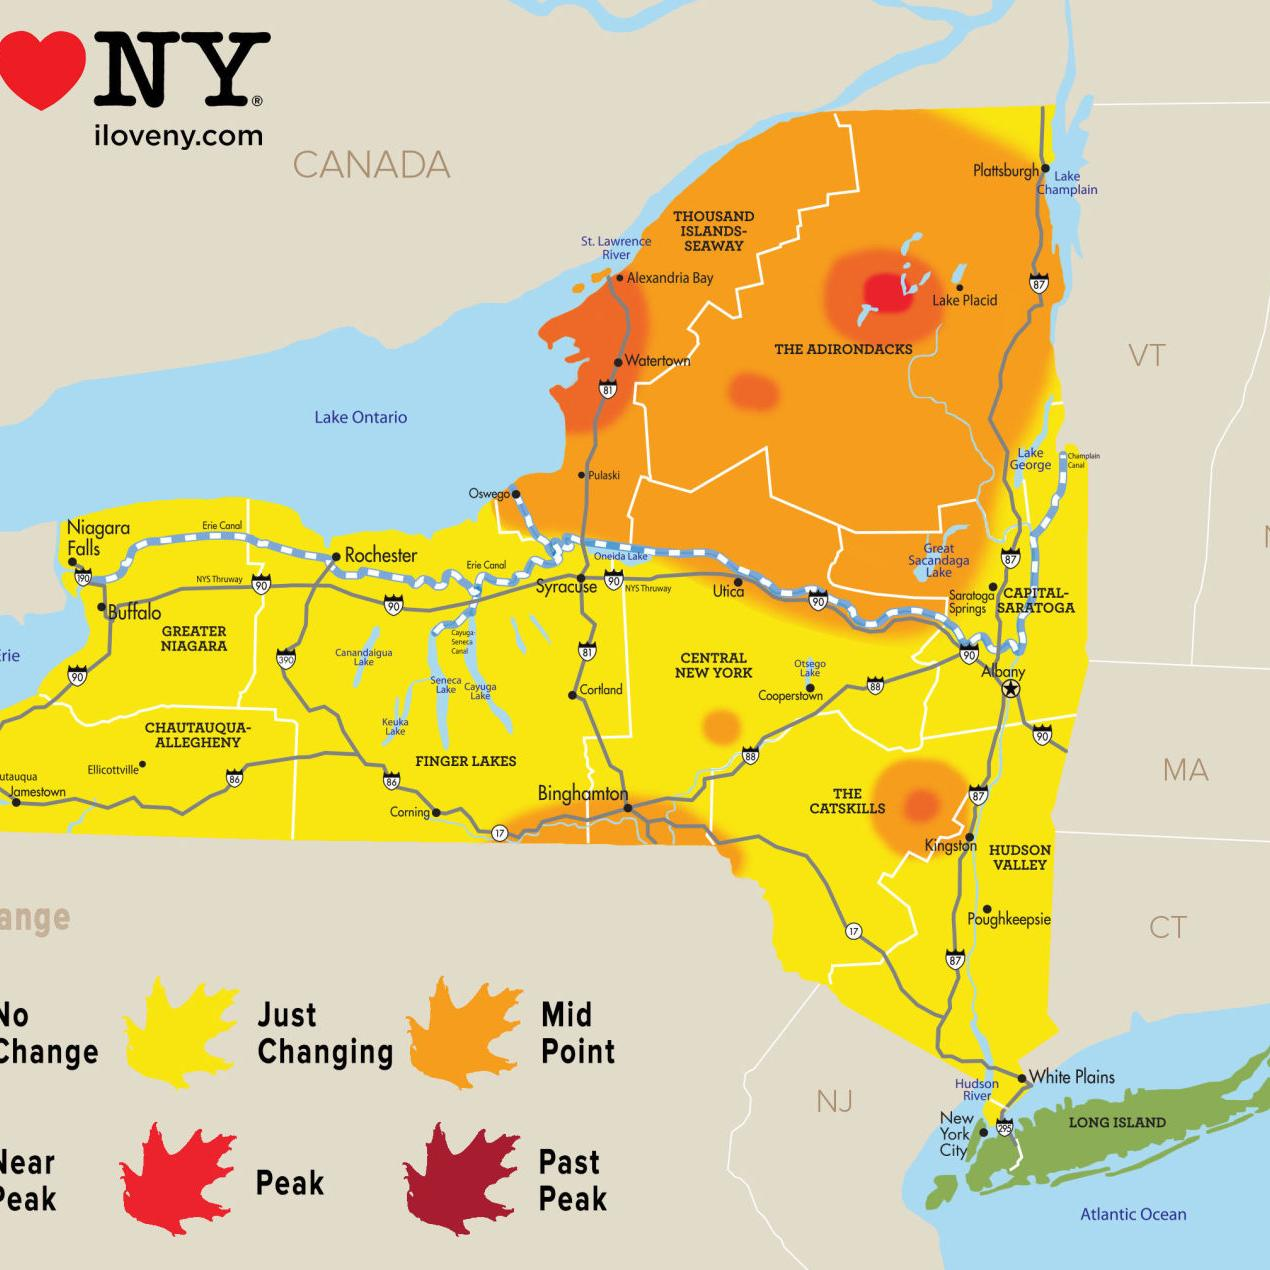 Foliage Map New York 2017.New York State Fall Foliage Report For Week Of Oct 3